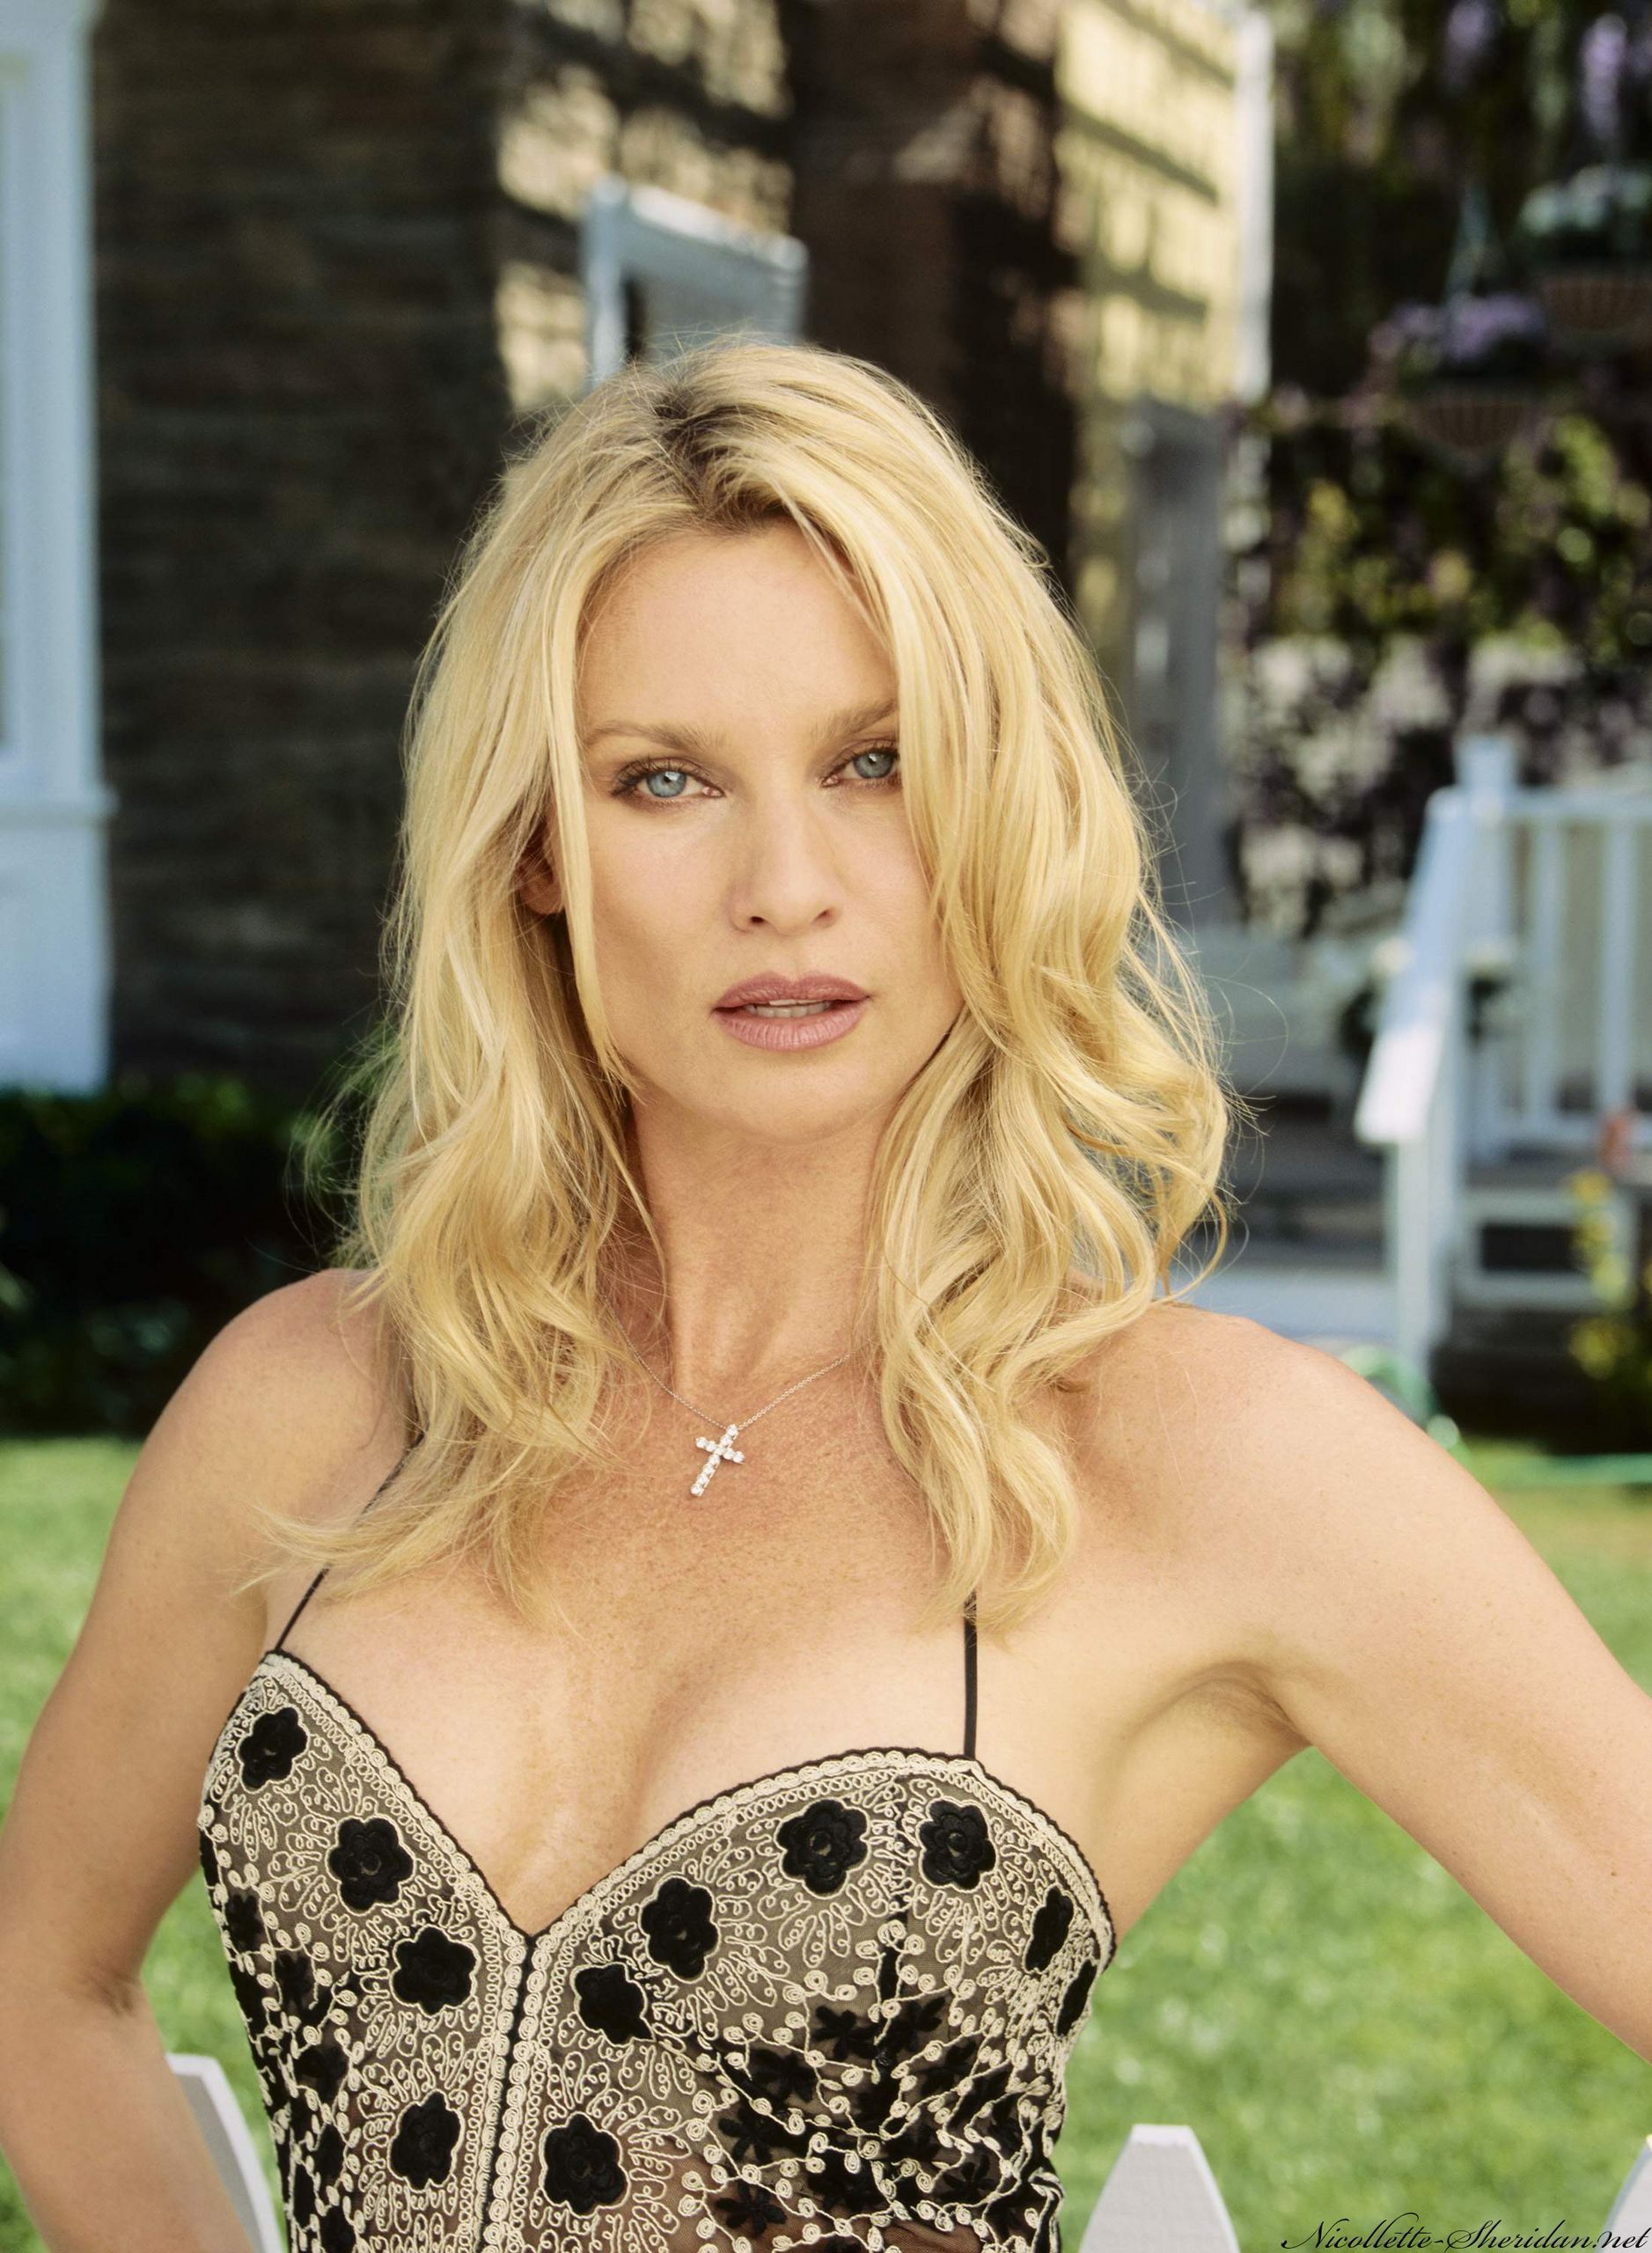 Discussion on this topic: Tomiko Fraser, nicollette-sheridan-born-1963/